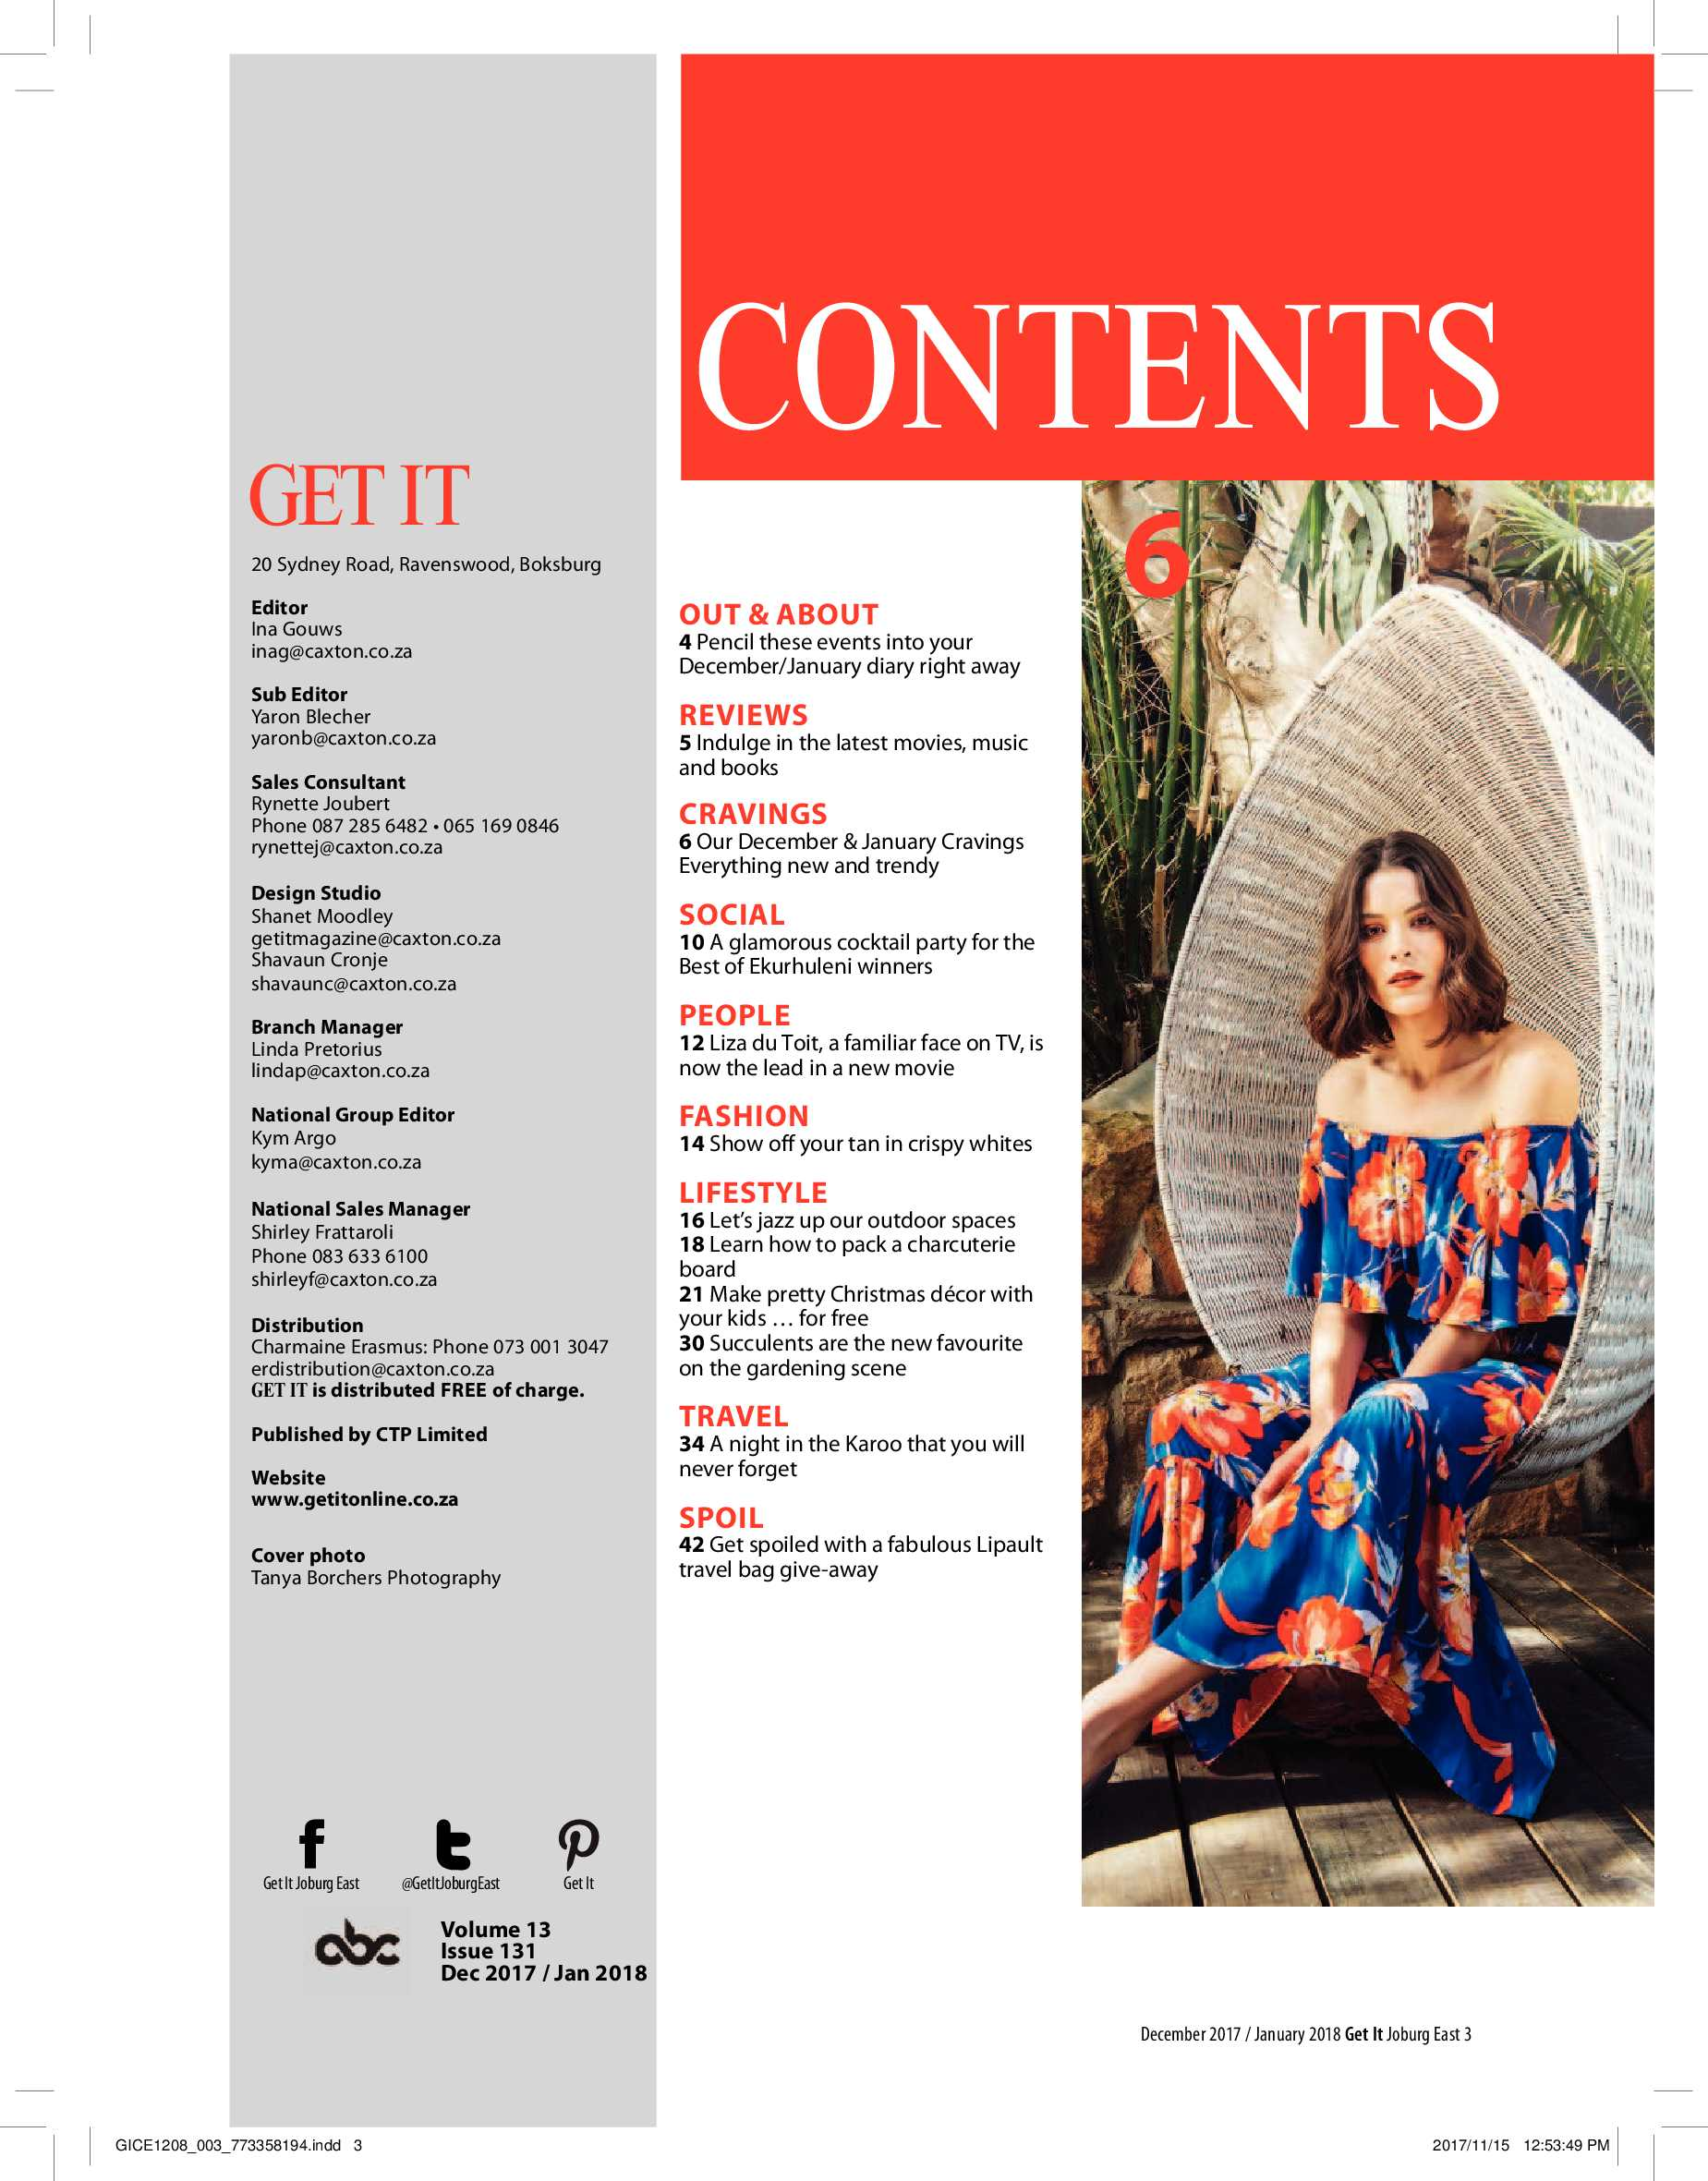 get-east-december-2017-january-2018-epapers-page-3